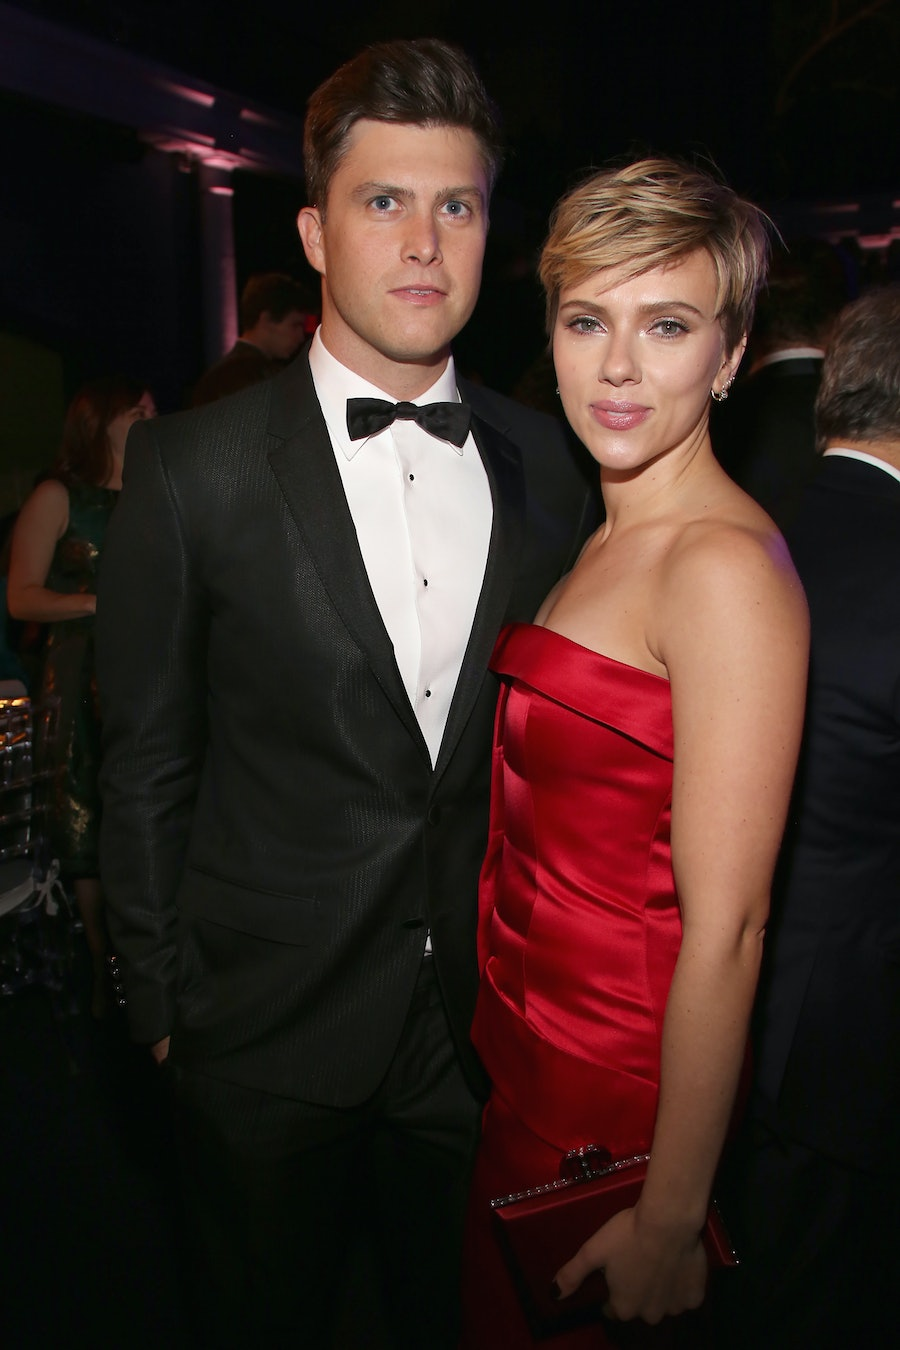 Scarlett Johansson & Colin Jost's First Public Appearance Together